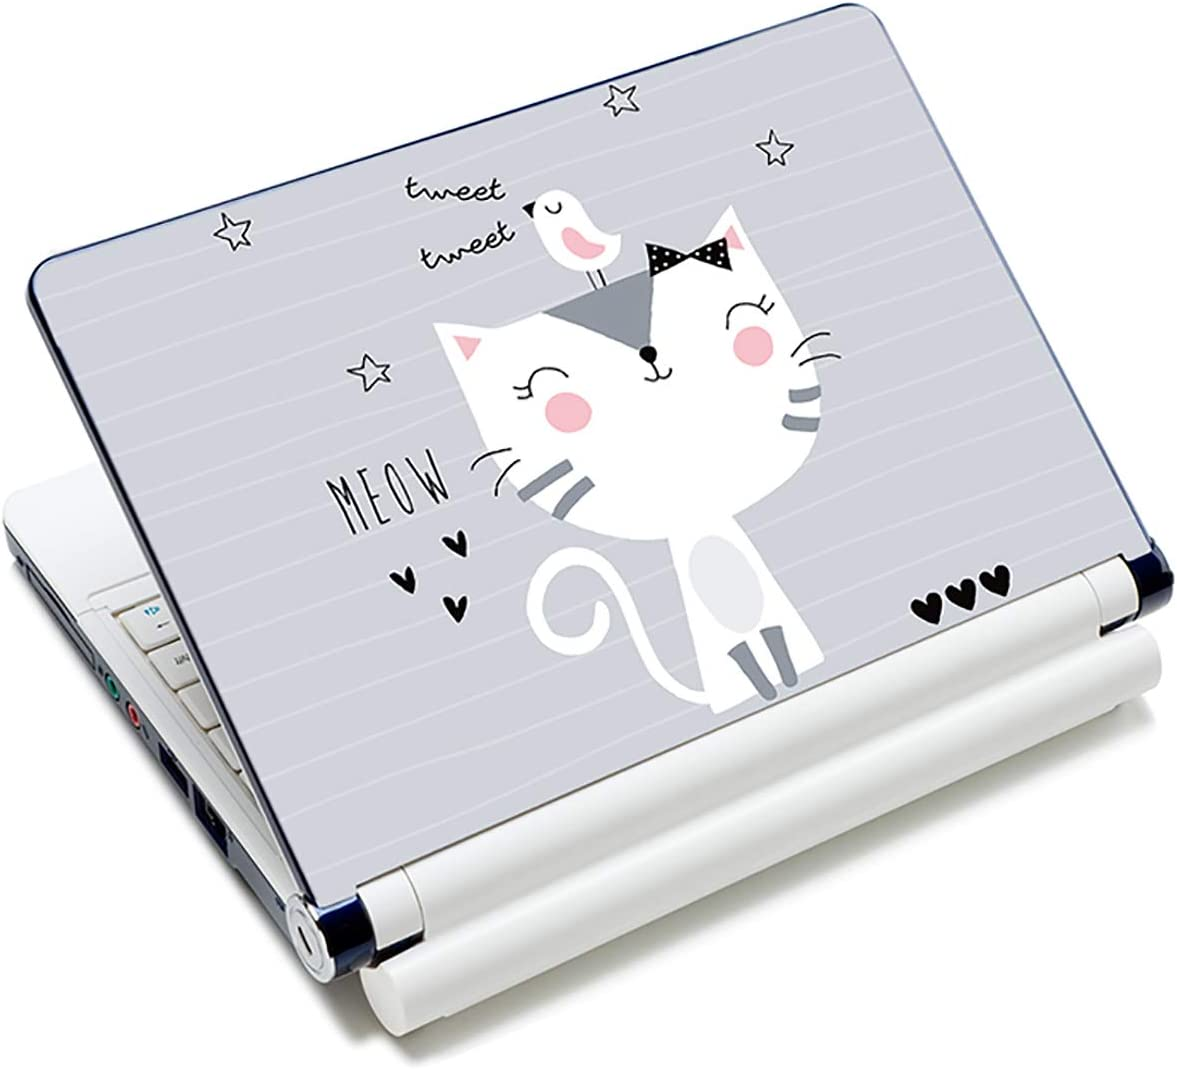 "Baocool Laptop Skin Sticker Decal,12"" 13"" 13.3"" 14"" 15"" 15.4"" 15.6 inch Laptop Skin Sticker Cover Art Decal Protector Notebook PC (Cute Cat)"